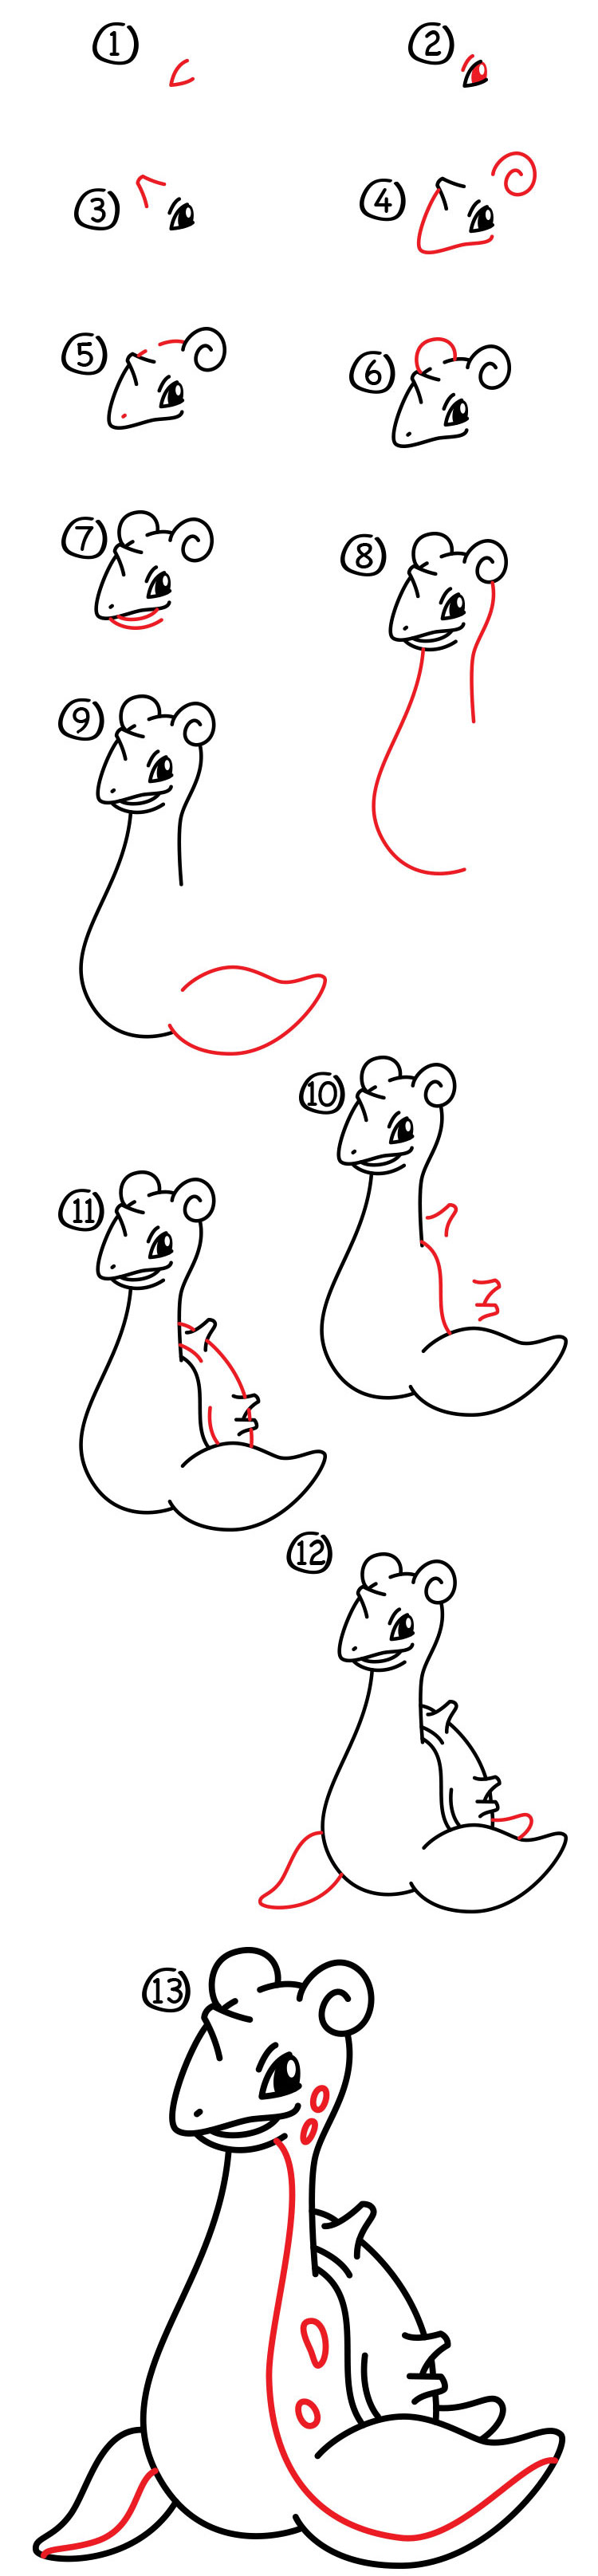 How To Draw Mario Characters Step By Step For Kids How To Draw Lapras - A...